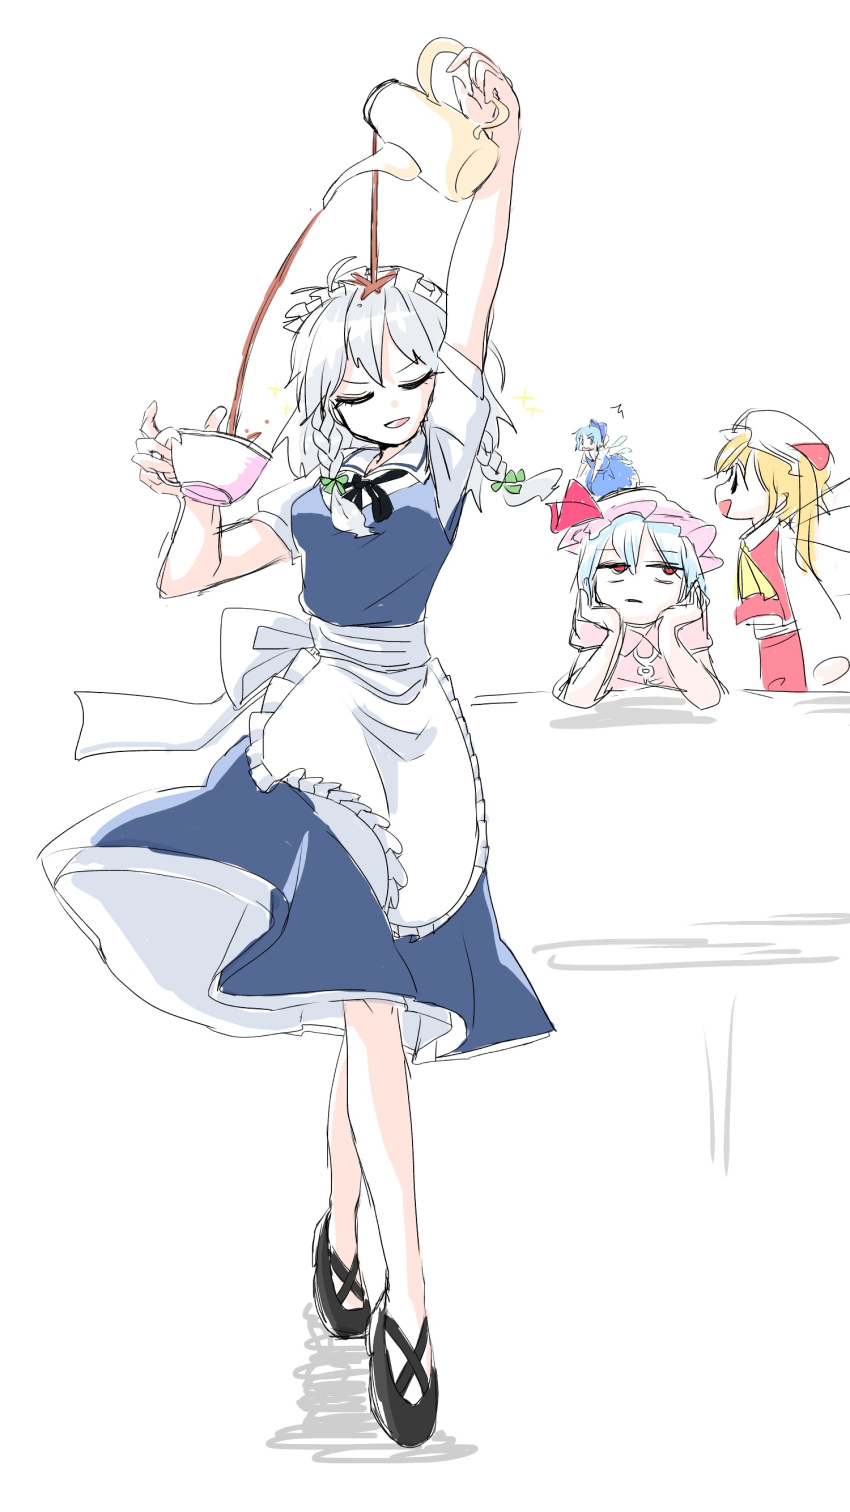 4girls :d absurdres apron arm_up ascot bangs black_footwear black_neckwear black_ribbon blue_bow blue_dress blue_hair bow braid breasts cirno closed_eyes commentary_request cross-laced_footwear cup dress eyebrows_visible_through_hair facing_viewer failure flandre_scarlet frilled_apron frills from_side full_body green_bow hair_bow hands_up hat hat_ribbon head_rest head_tilt highres holding holding_cup holding_teapot ice ice_wings izayoi_sakuya jitome looking_up maid maid_headdress medium_breasts mob_cap multiple_girls neck_ribbon one_side_up open_mouth paruna_(mariko_marimo9) petticoat pinafore_dress pink_dress pink_headwear profile puffy_short_sleeves puffy_sleeves red_eyes red_ribbon red_skirt red_vest remilia_scarlet ribbon shadow shirt shoes short_hair short_sleeves silver_hair simple_background sketch skirt skirt_set smile standing teacup teapot touhou twin_braids upper_body vest waist_apron white_apron white_background white_headwear white_shirt wings yellow_neckwear you're_doing_it_wrong